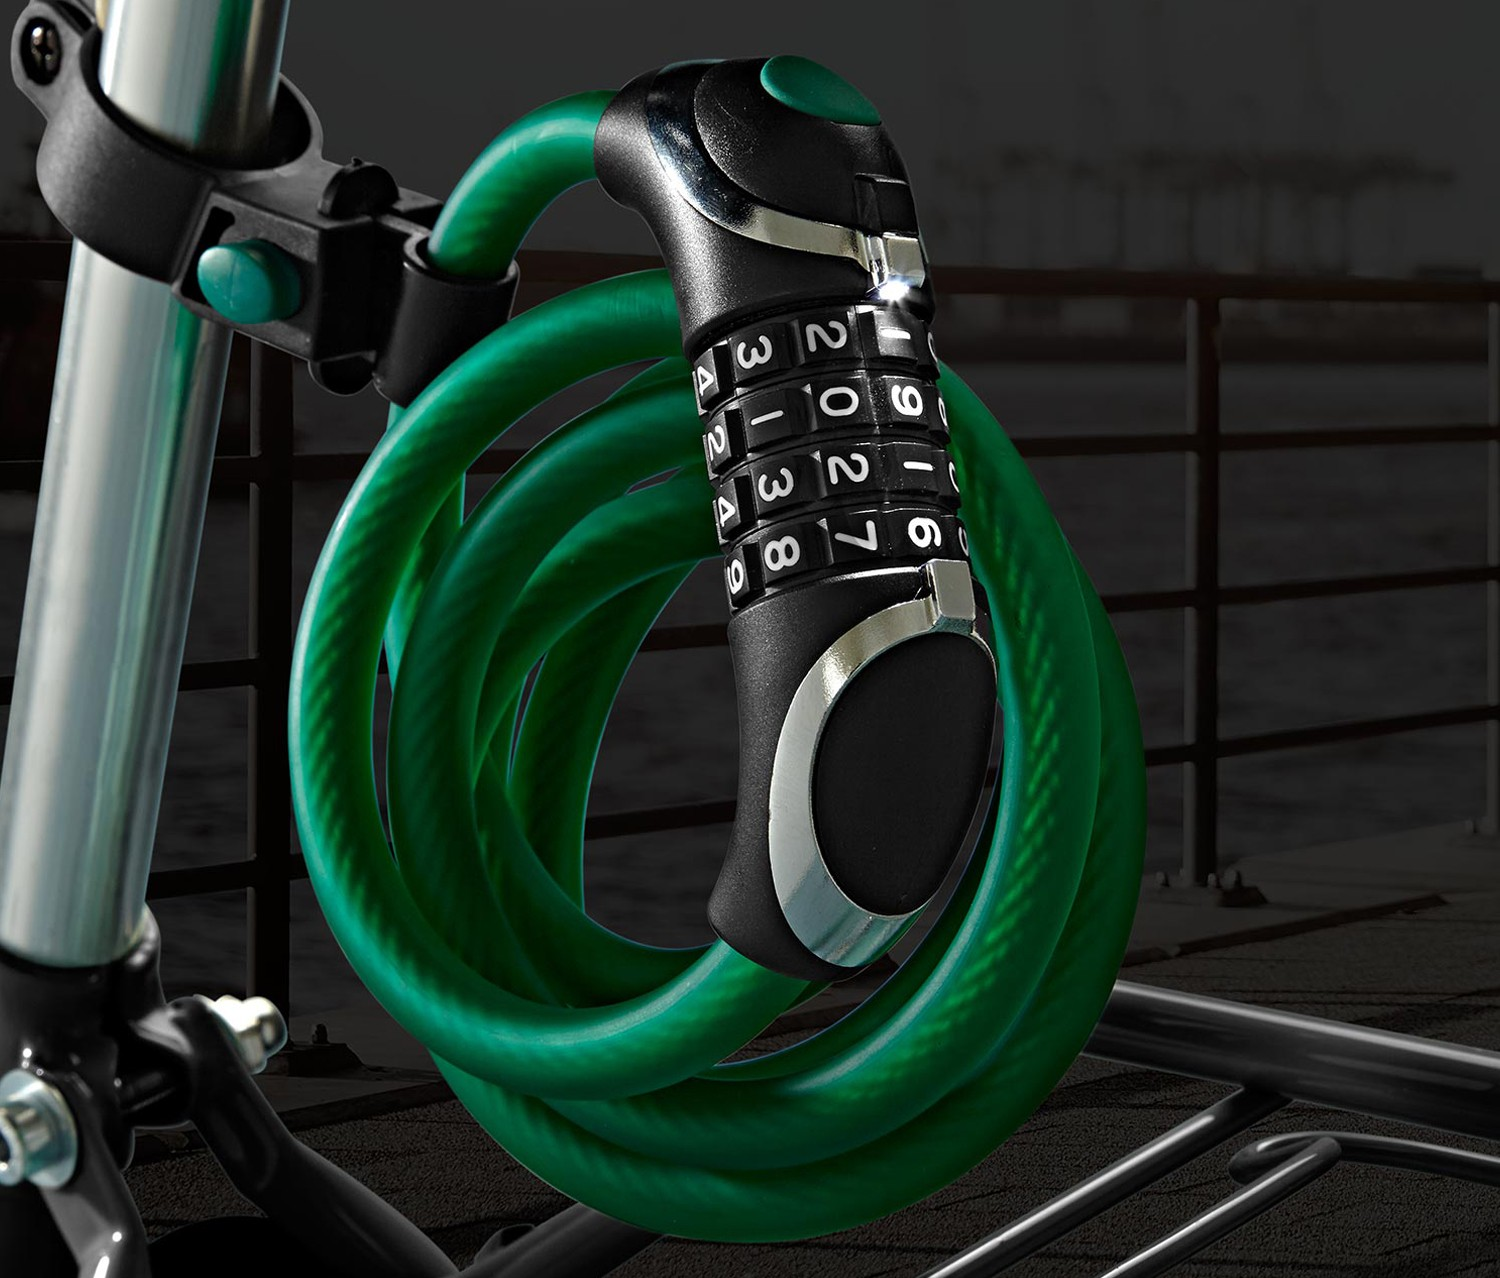 Steel Cable, LED, Combination Lock, Green/Black